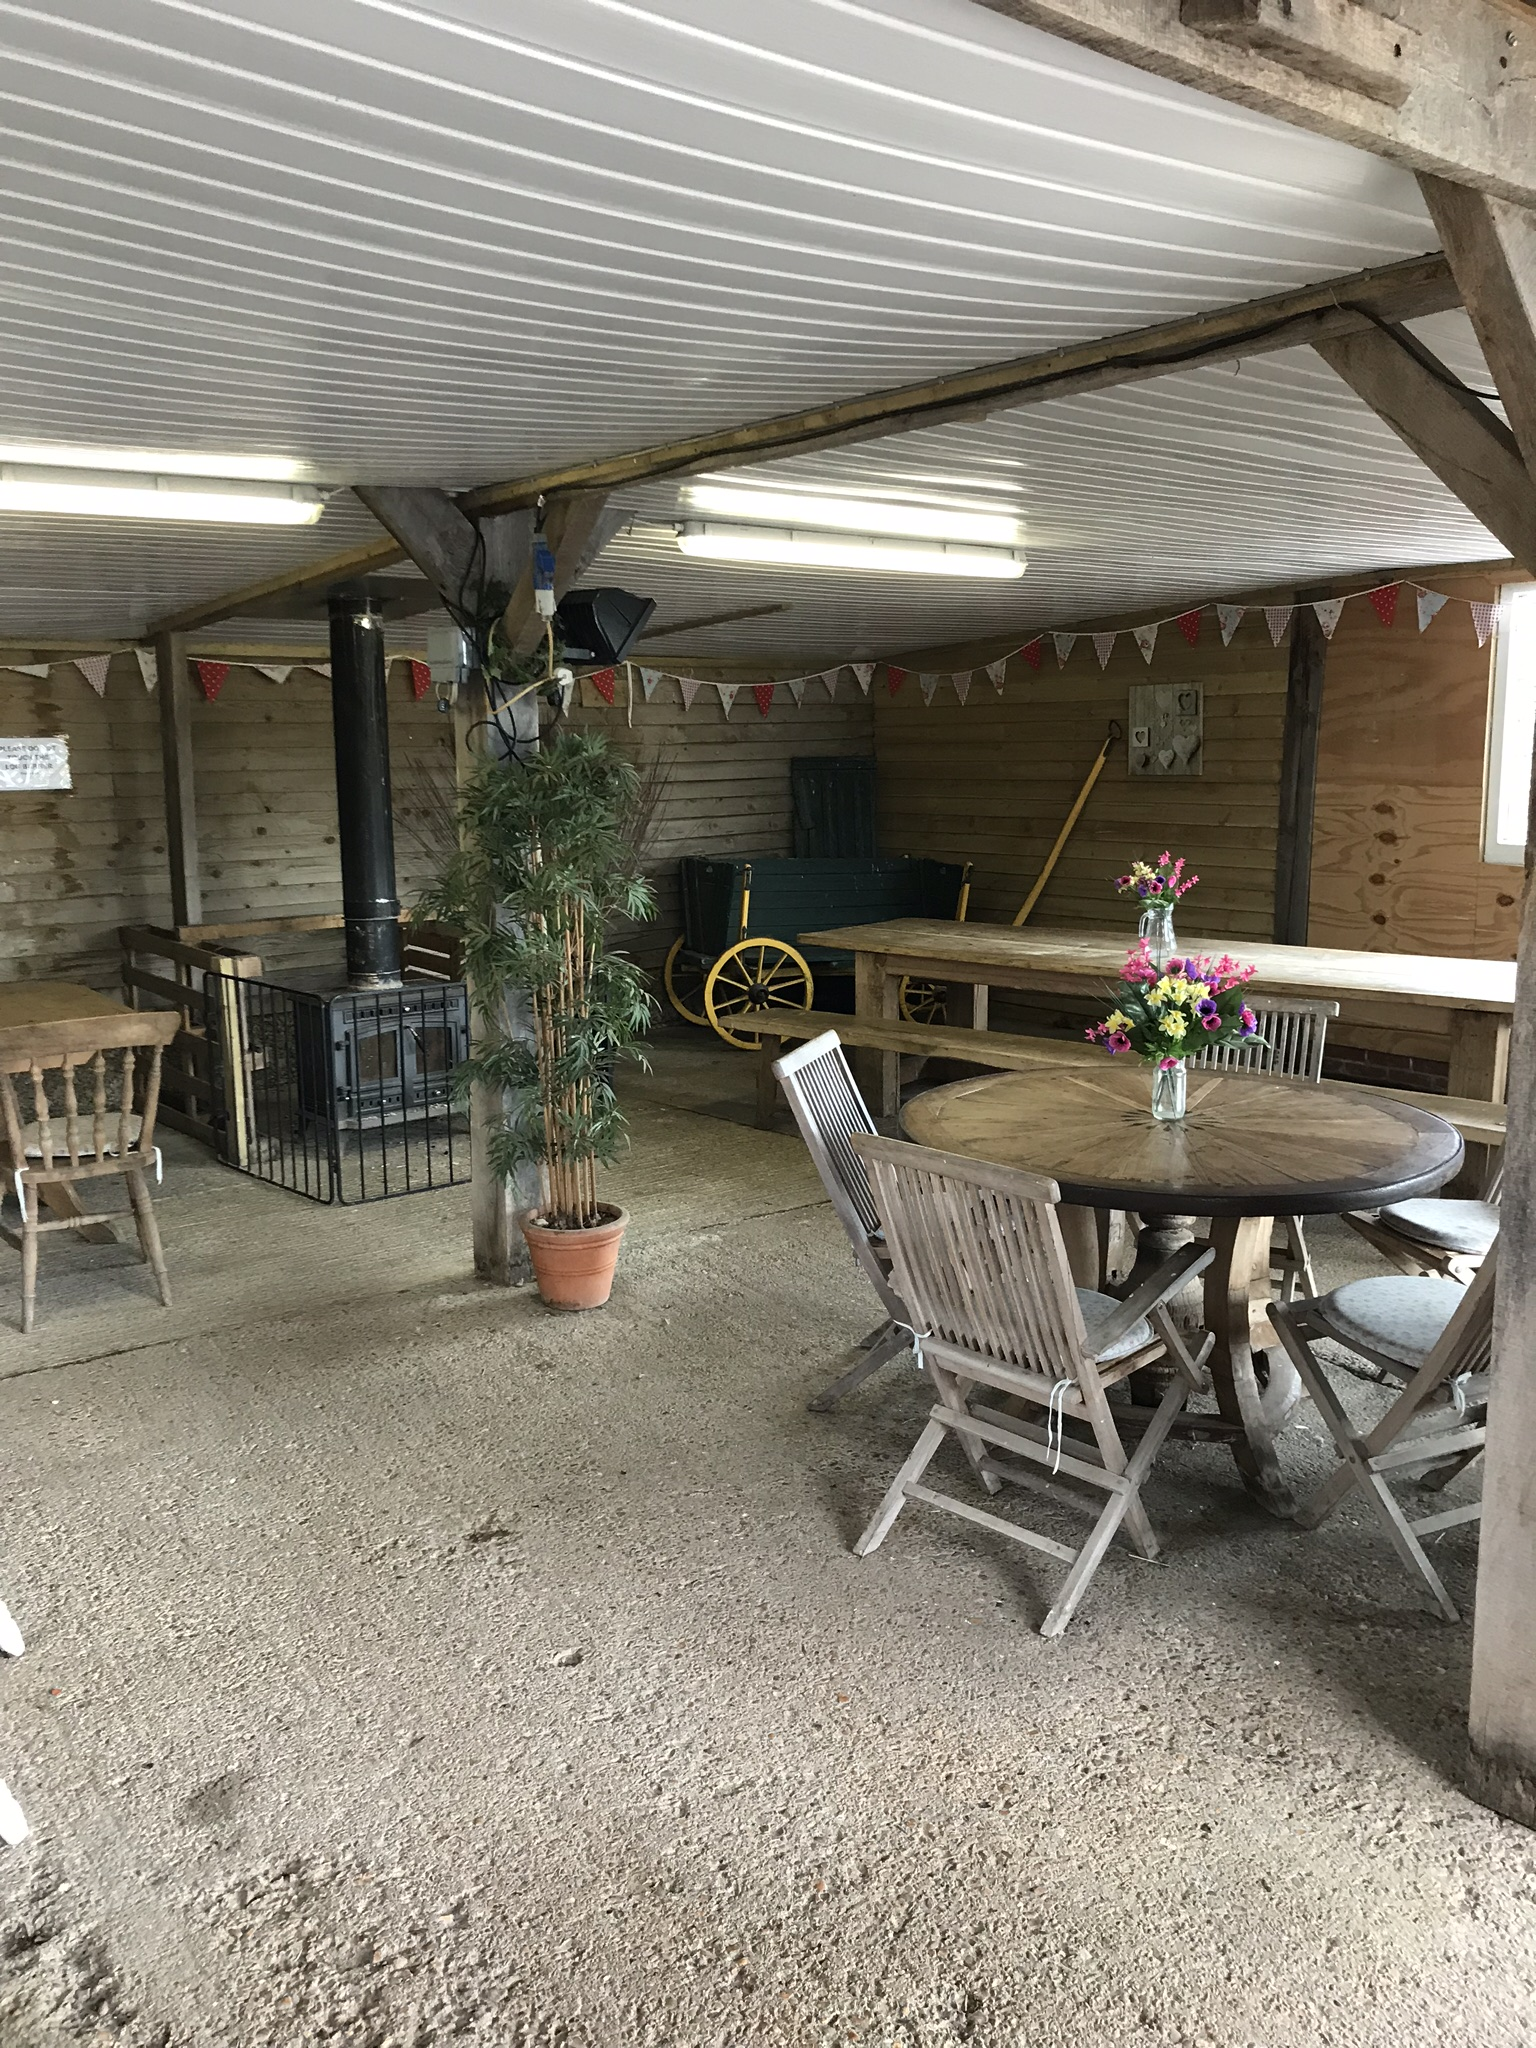 Image of Chilley Farm shop cafe